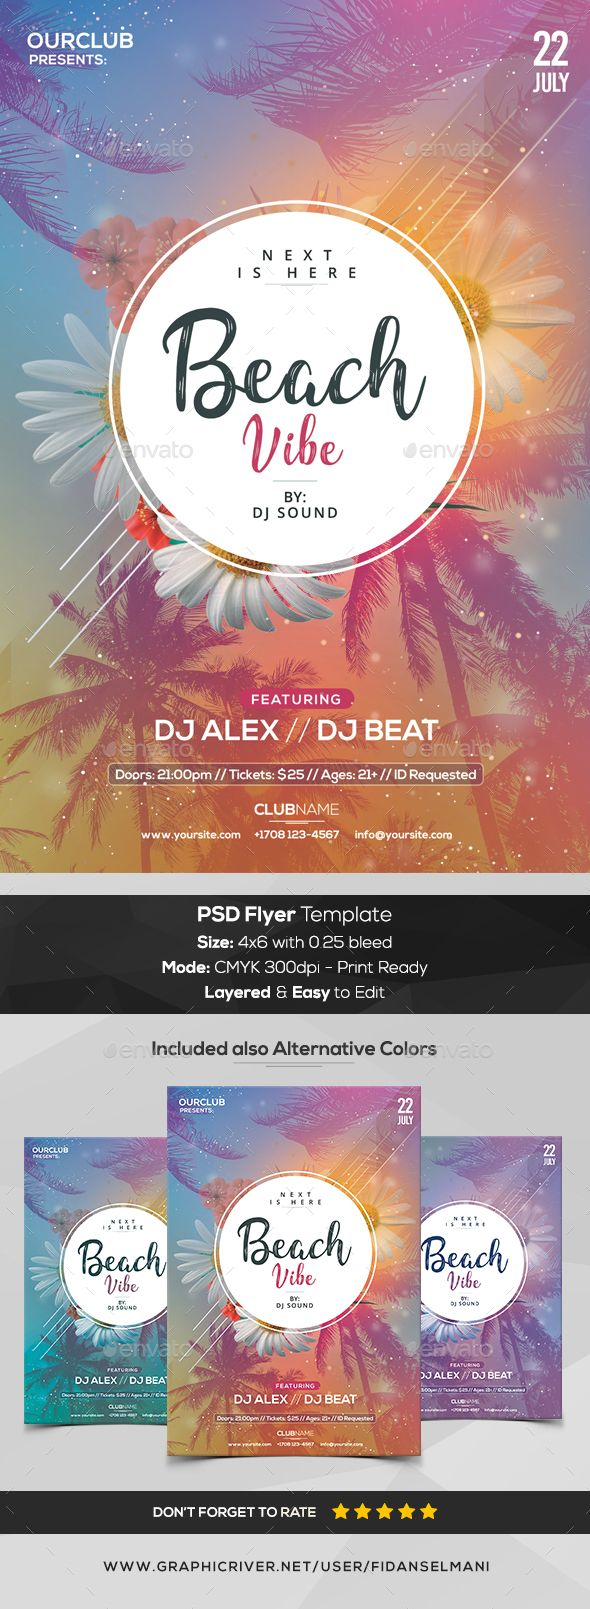 Beach Vibe - PSD #Flyer Template - #Events Flyers Download here:  https://graphicriver.net/item/beach-vibe-psd-flyer-template/20292490?ref=alena994